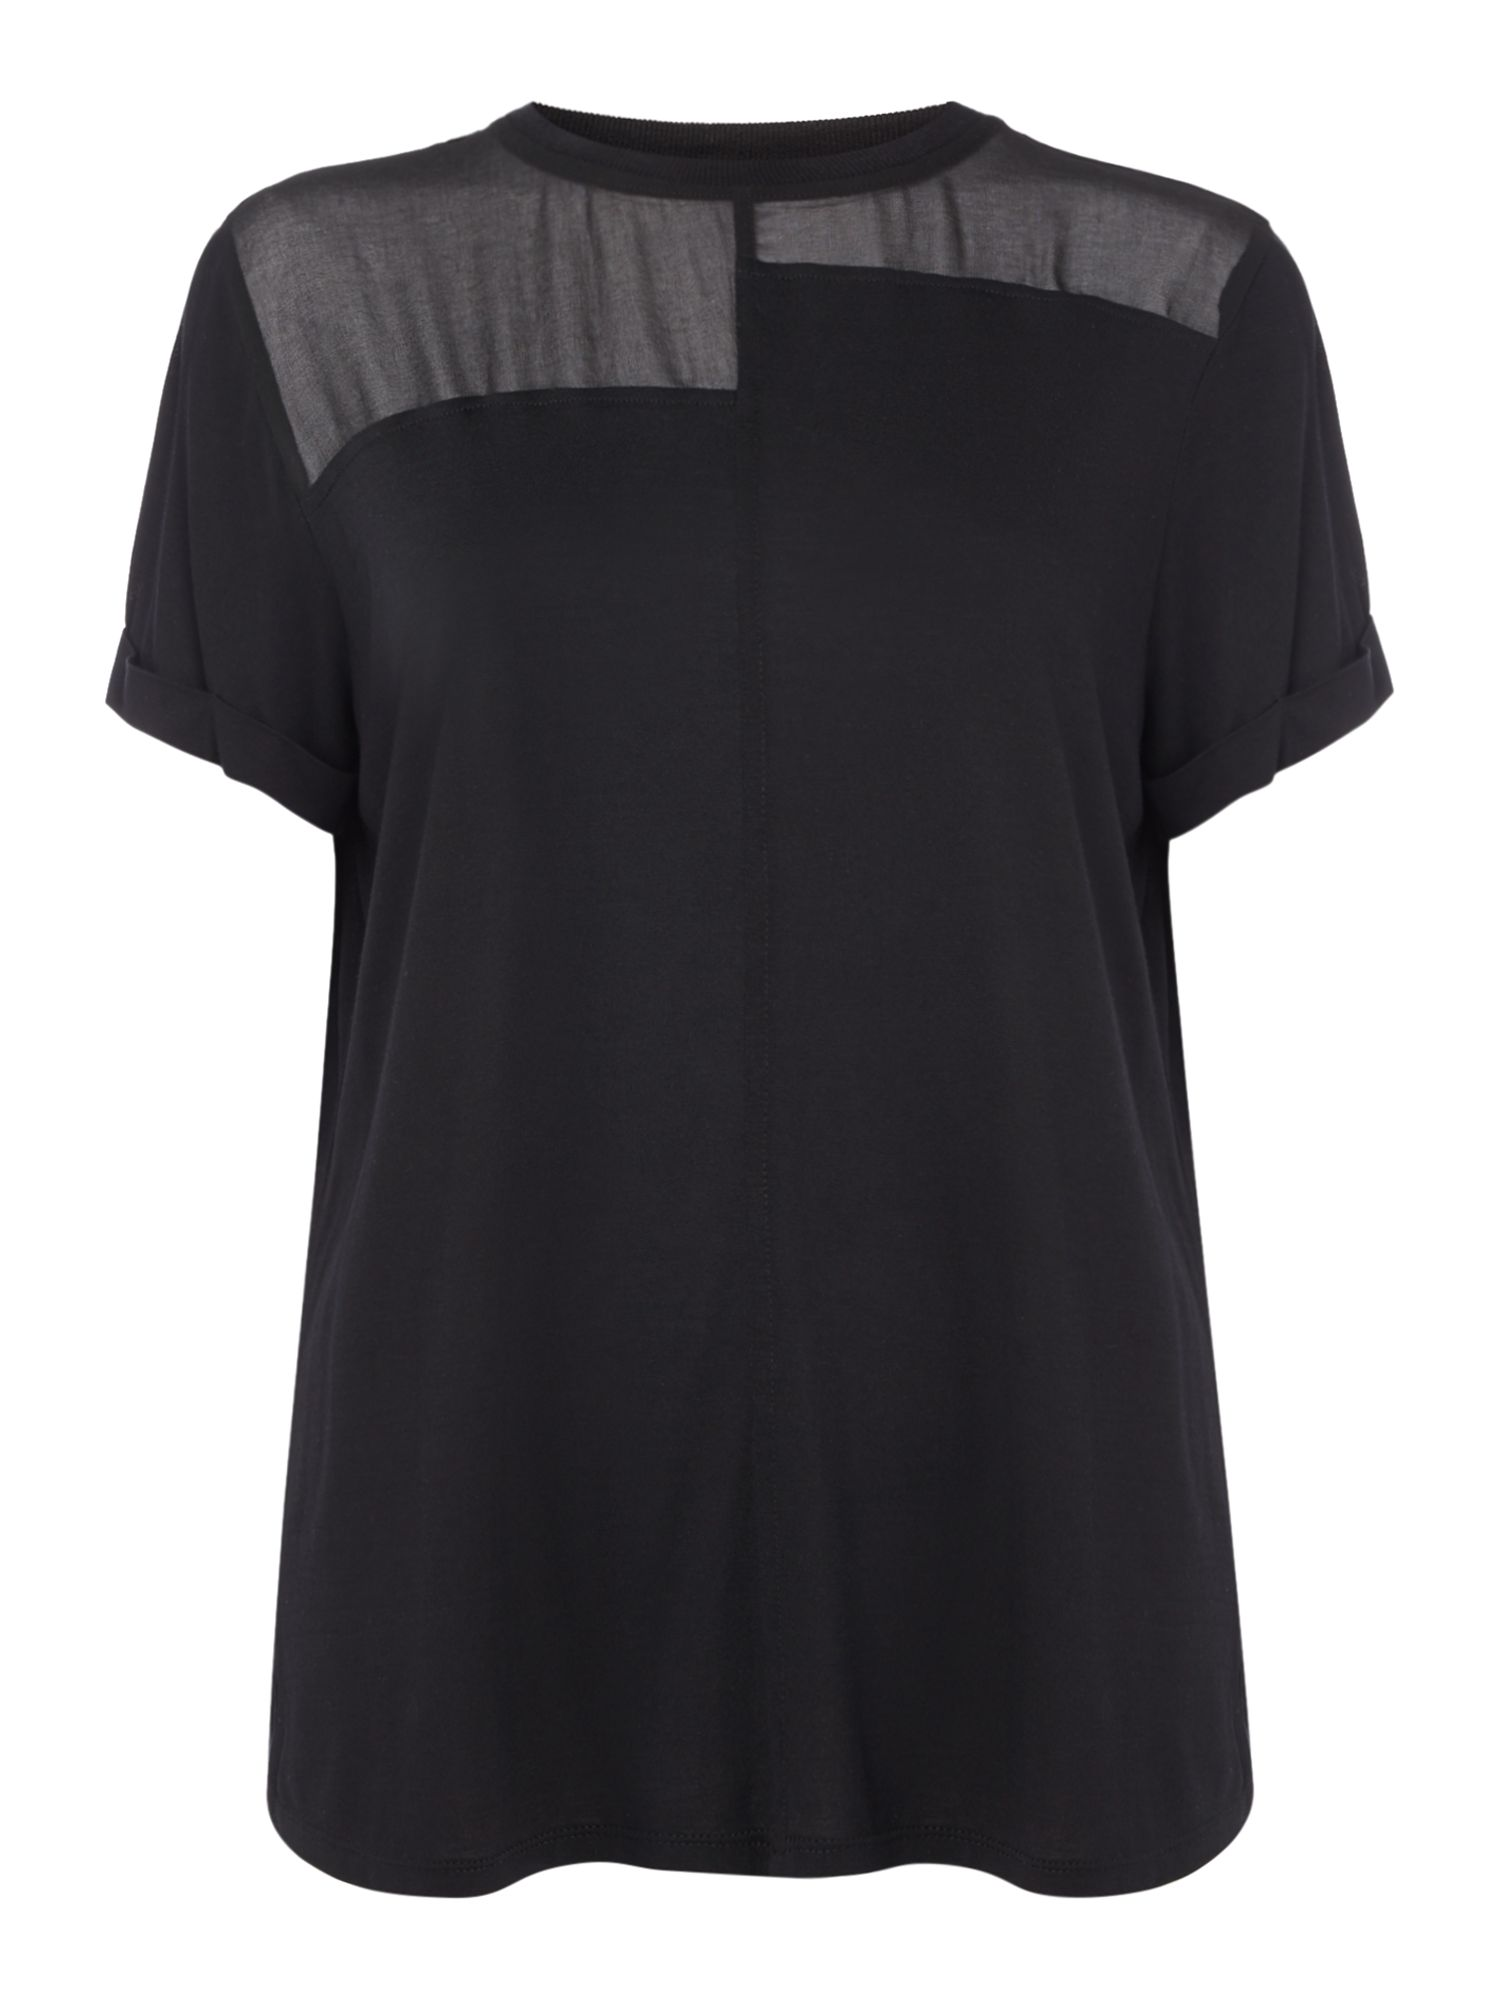 Label Lab Chiffon mix & match tee, Black